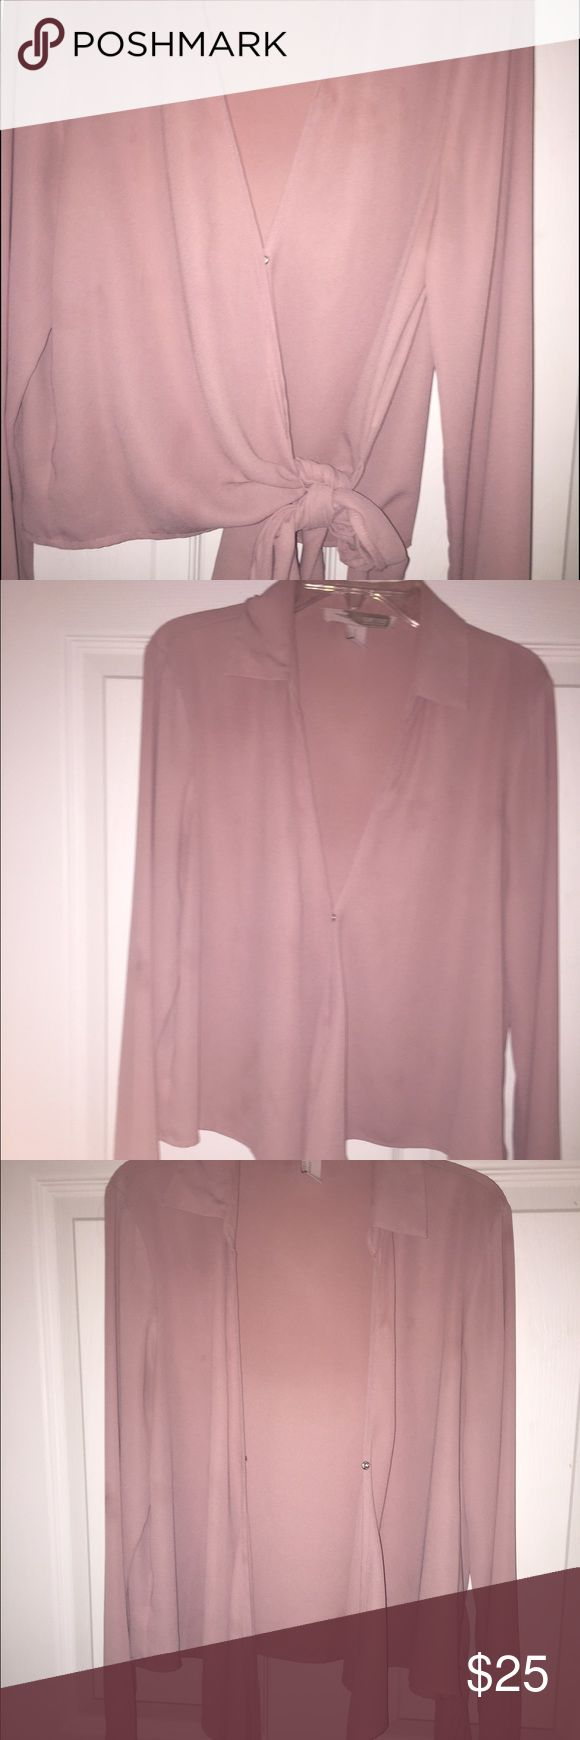 Pink blouse with a bow Cute with extra fabric to tie a bow. Price negotiable, make an offer! Forever 21 Tops Blouses